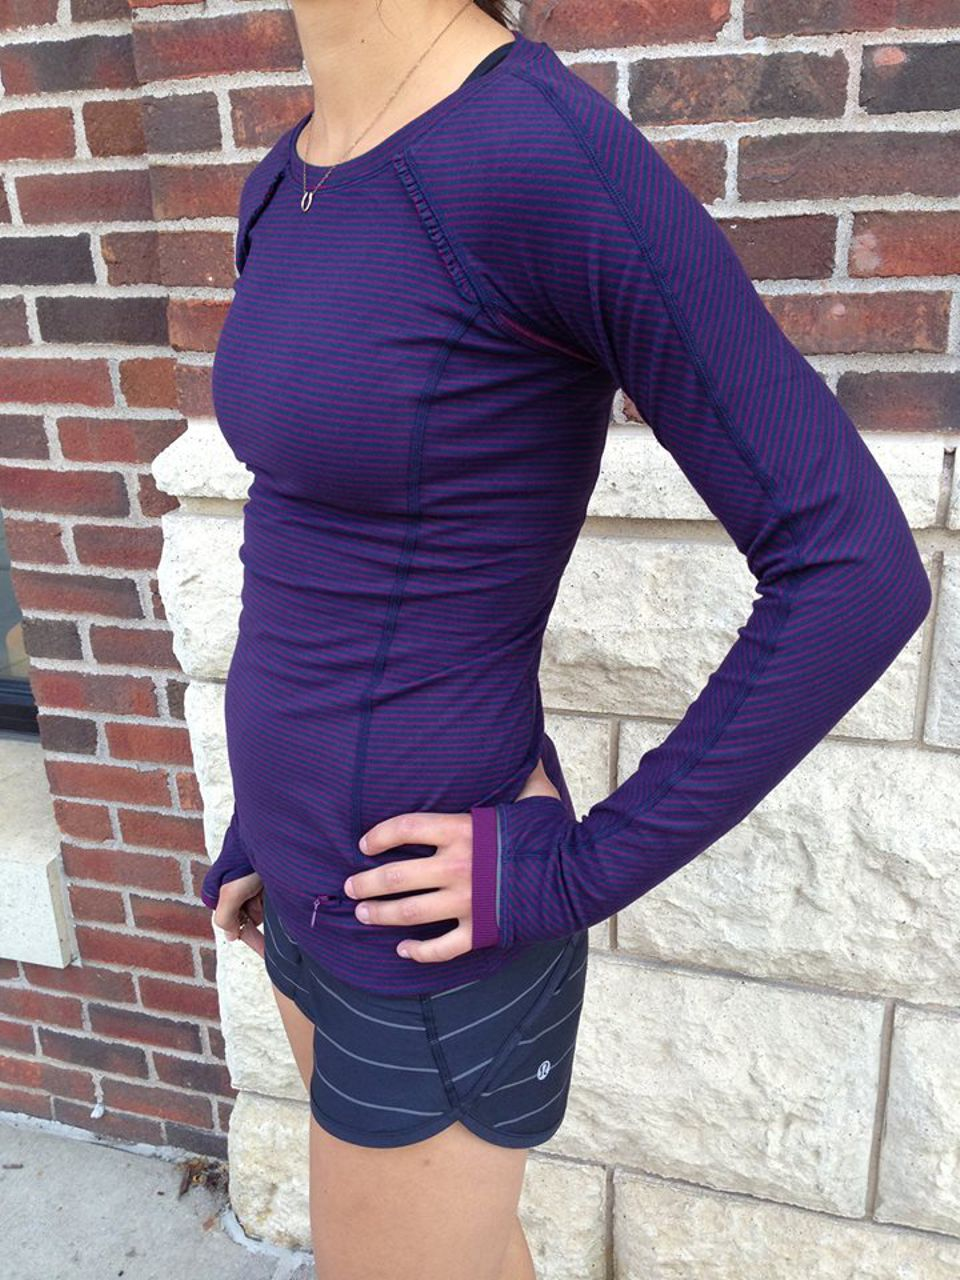 Lululemon Run:  Speed Short - Slalom Stripe Black / Quilt 23 Fall 2013 / Hyper Stripe Black